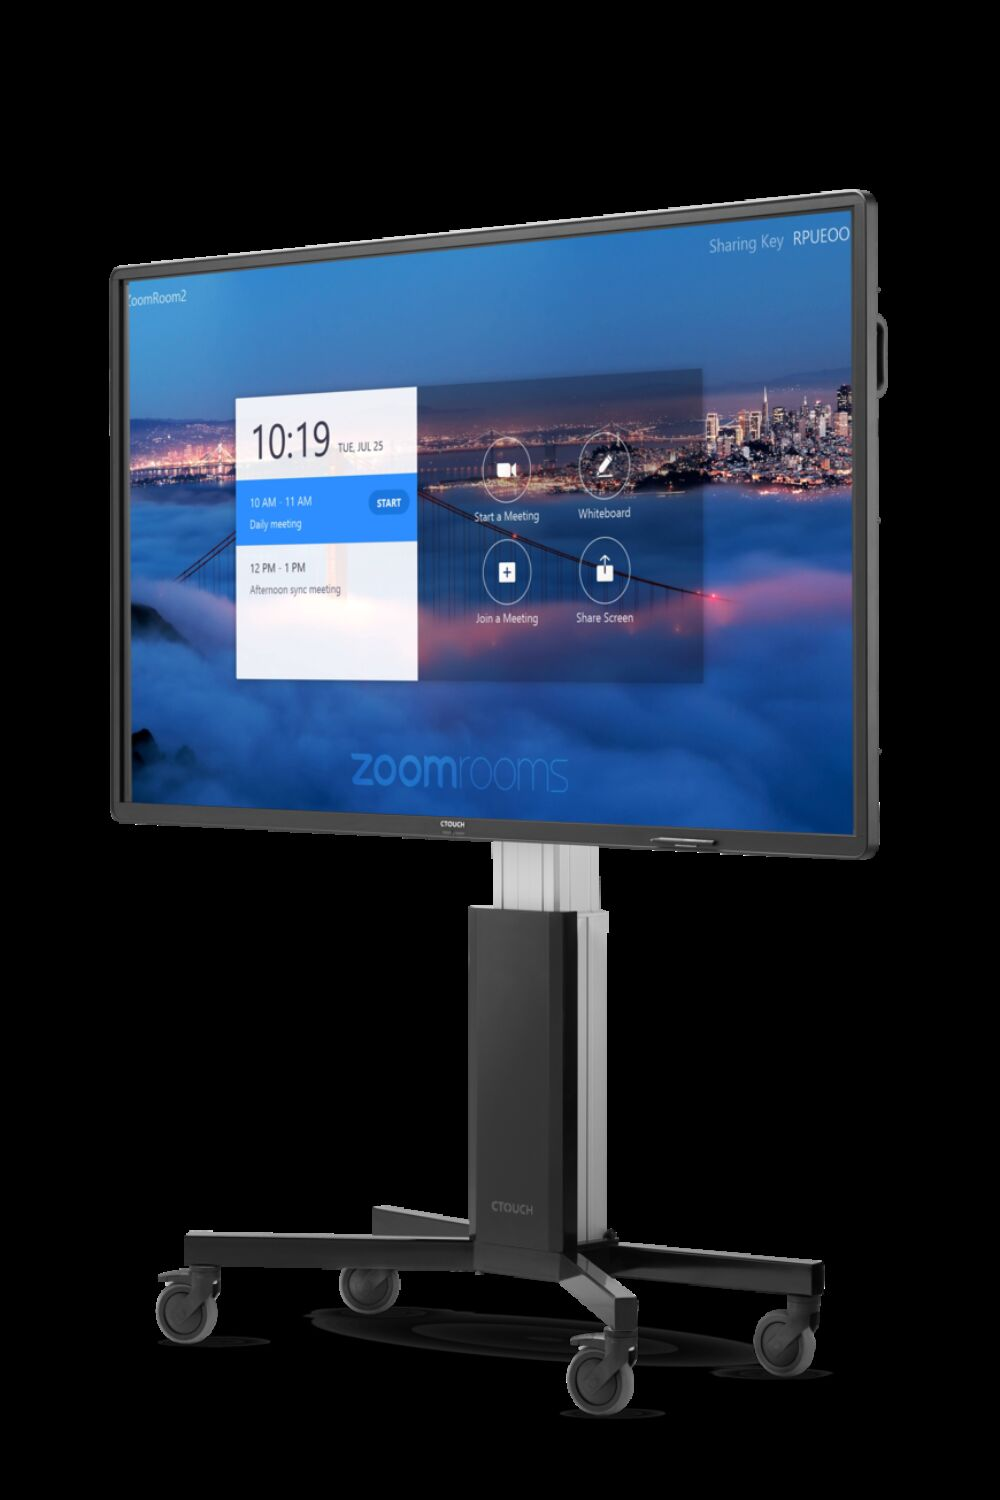 For Zoom user interface Riva display Wallom persp high HR Hot Pink RGB